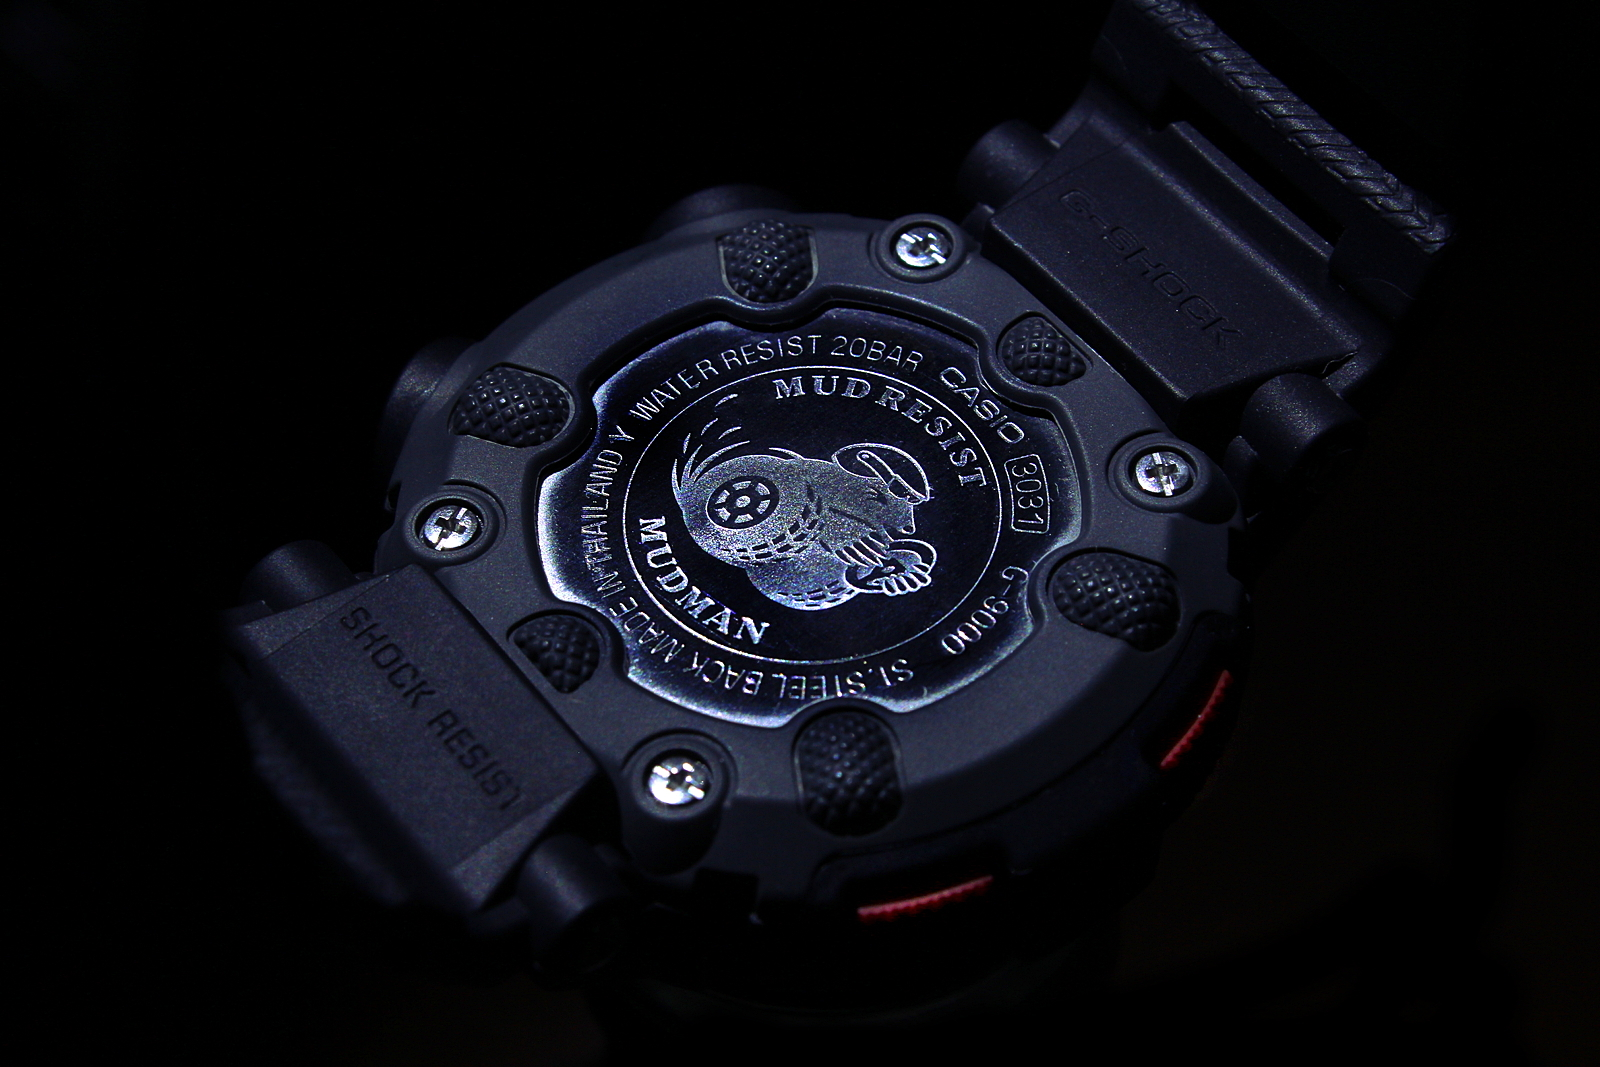 Casio G-Shock G-9000-1ER Mudman / Dark 2